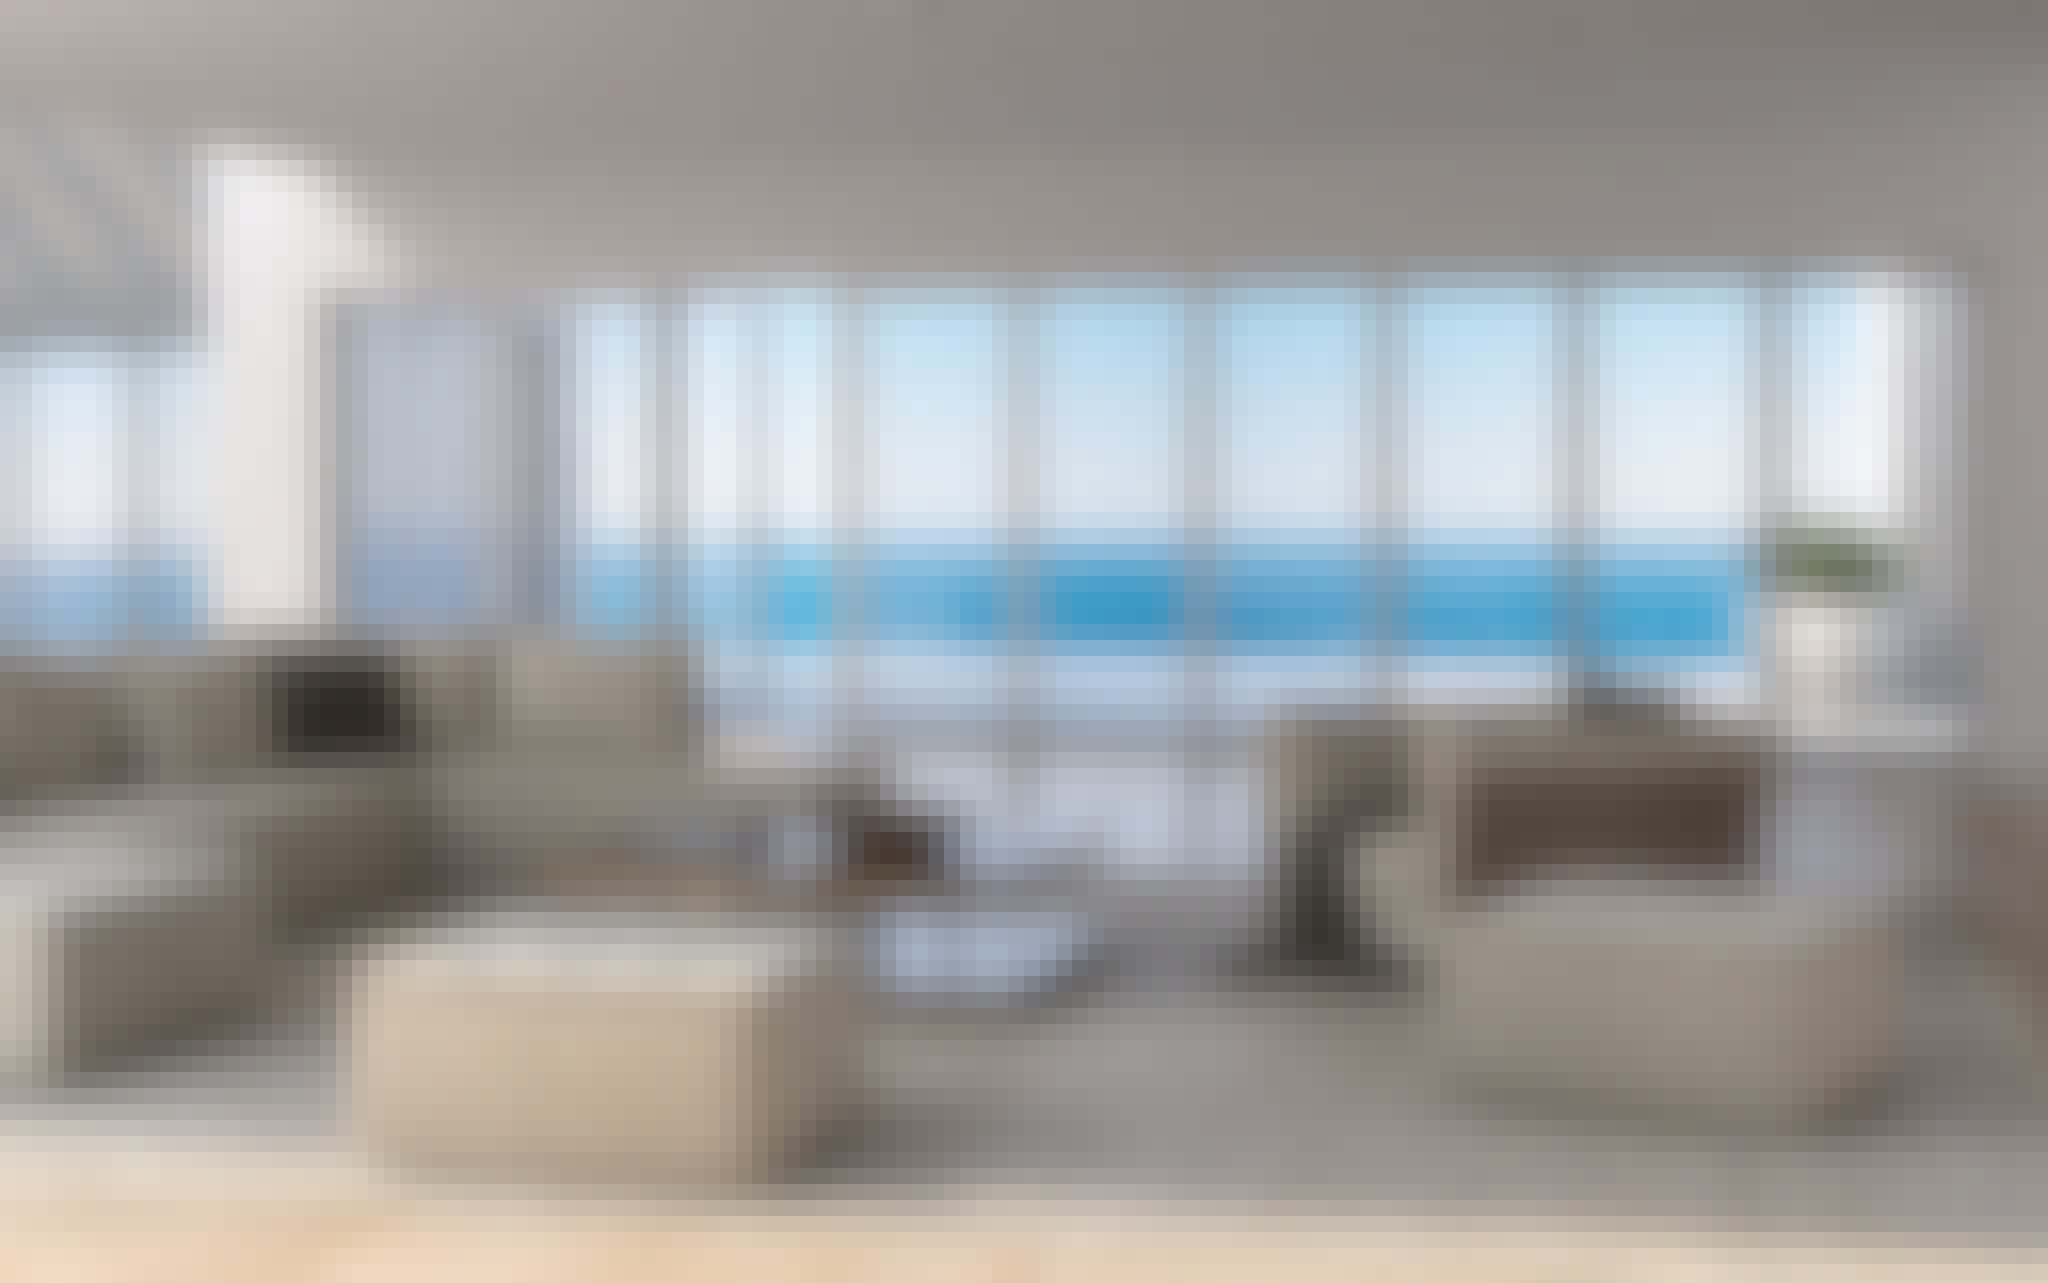 residential glass walls with ocean views